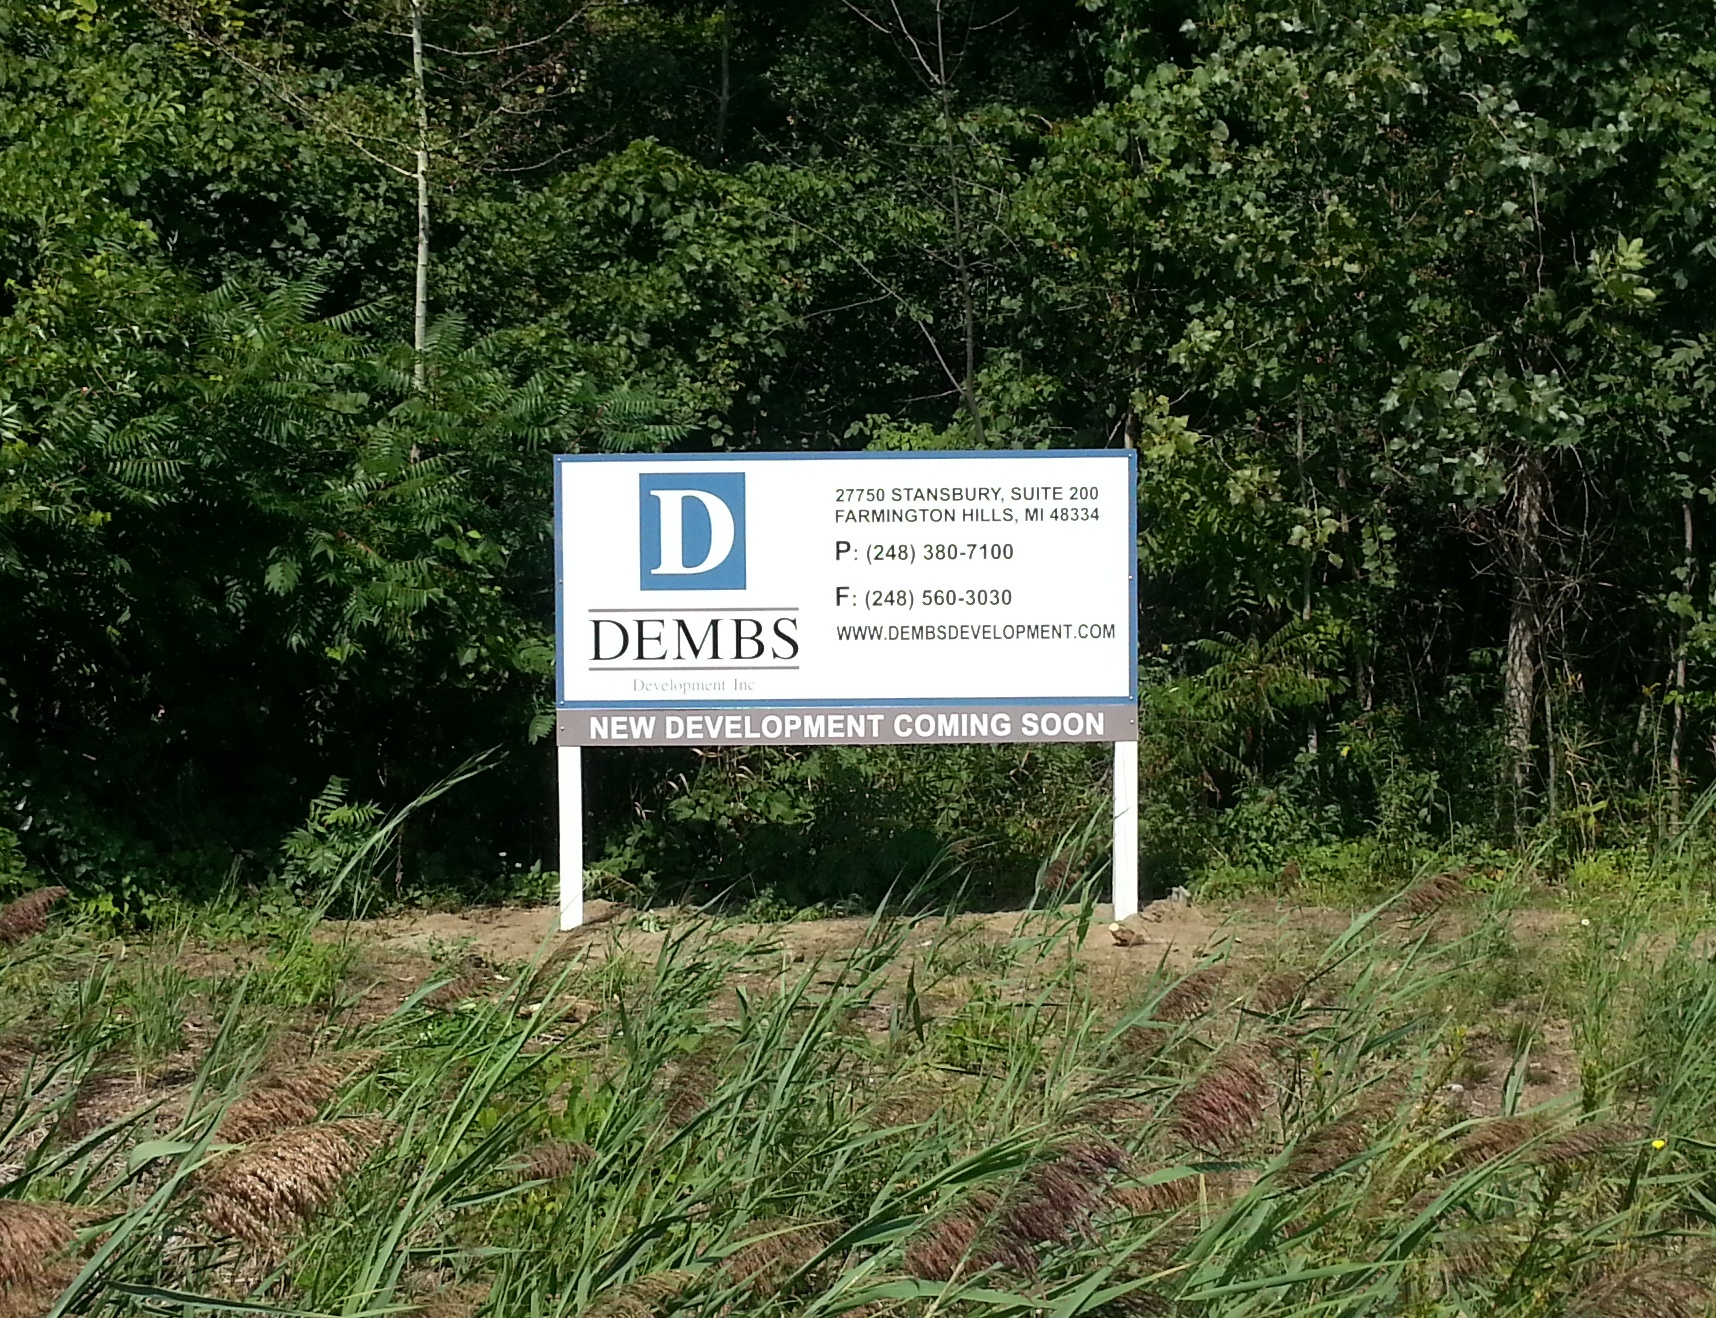 Dembs Development - Farmington Hills